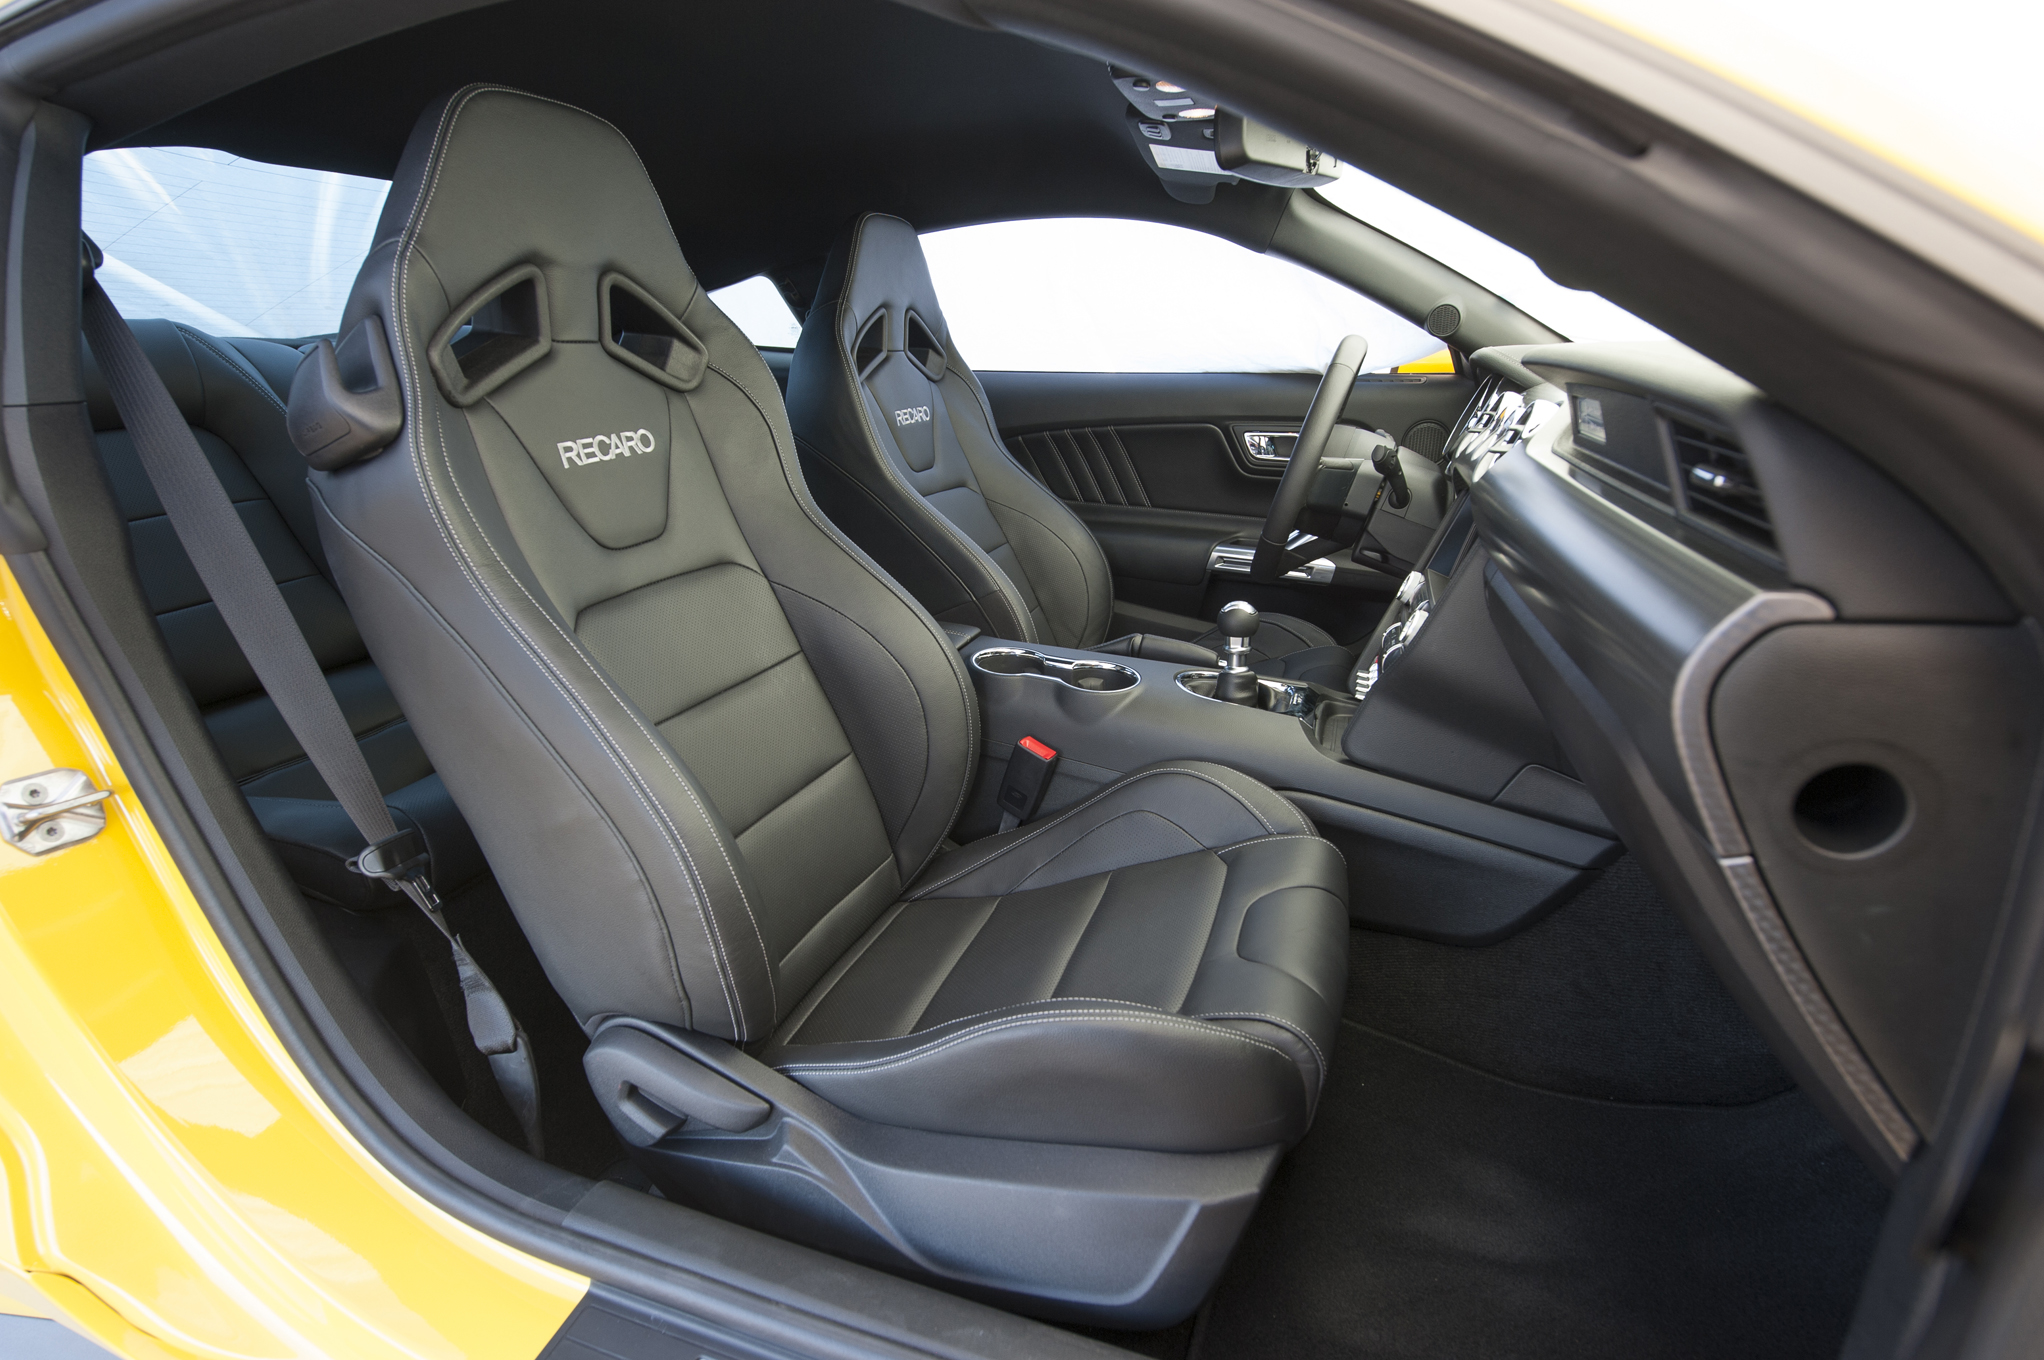 2015 Ford Mustang Gt Front Seats Interior (Photo 13 of 30)